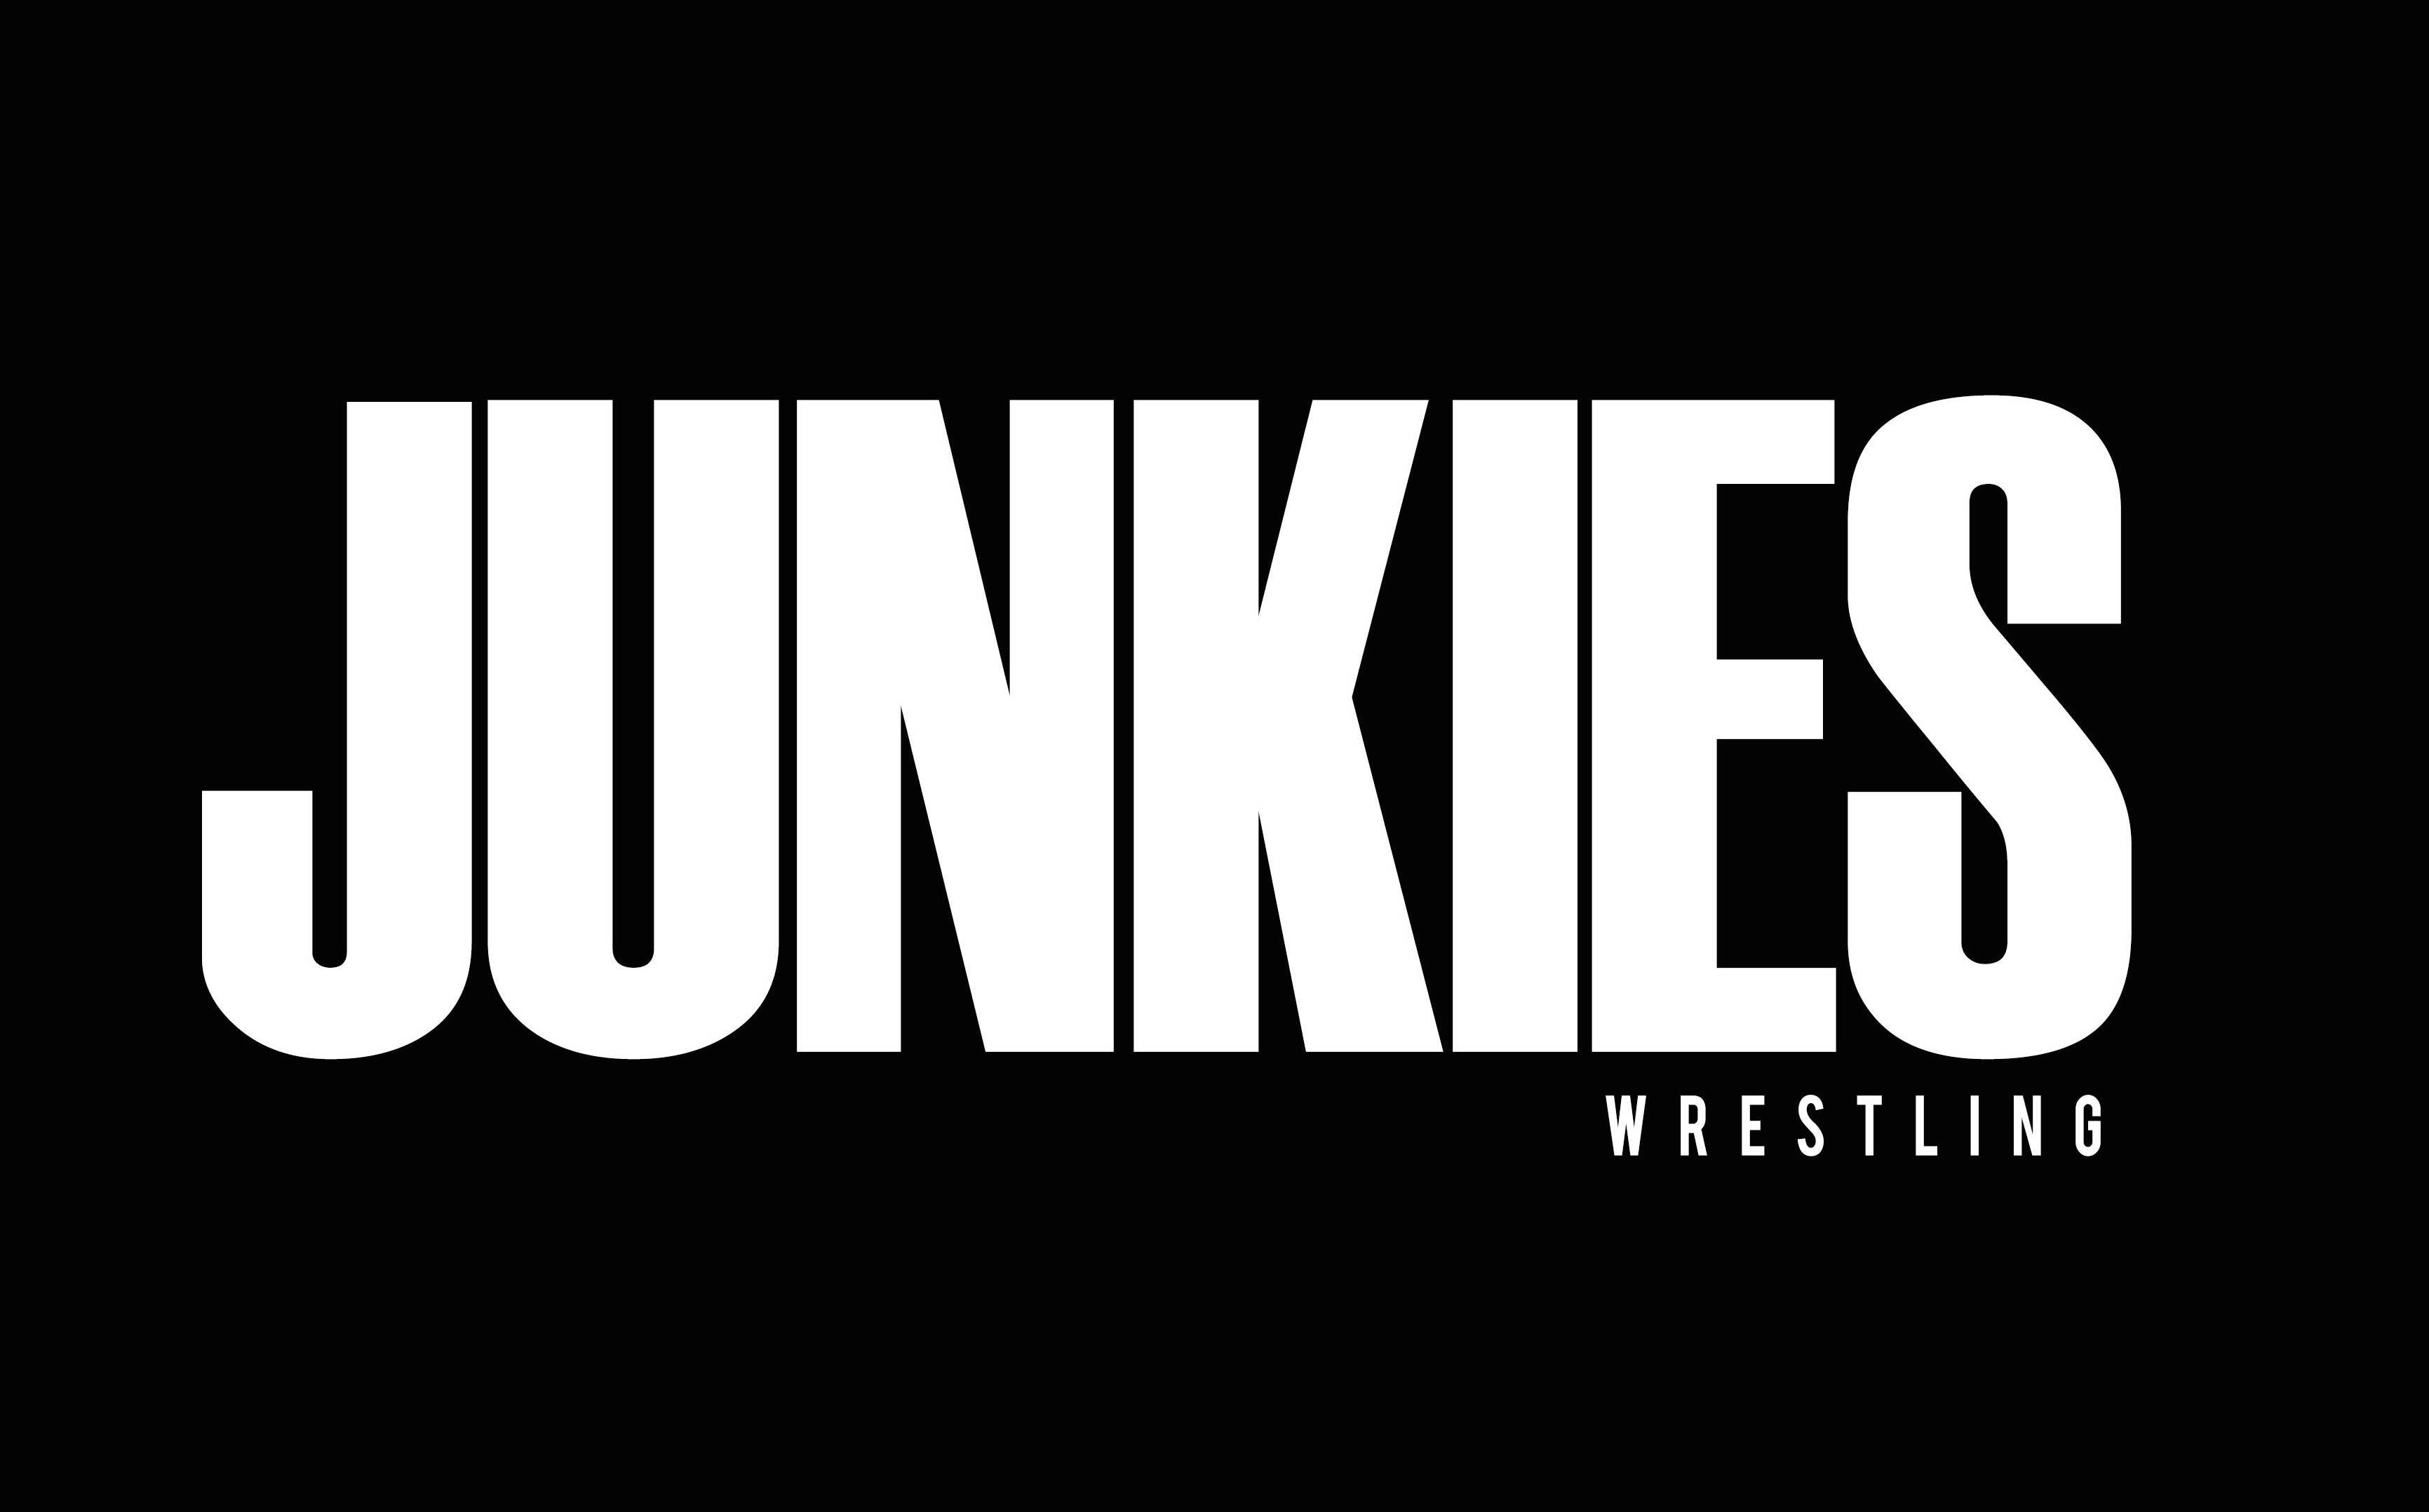 Wrestling Junkies Podcast Episode 31 -The Mount Rushmore of WWE: Bret Hart VS. HBK, Elimination Chamber Predictions